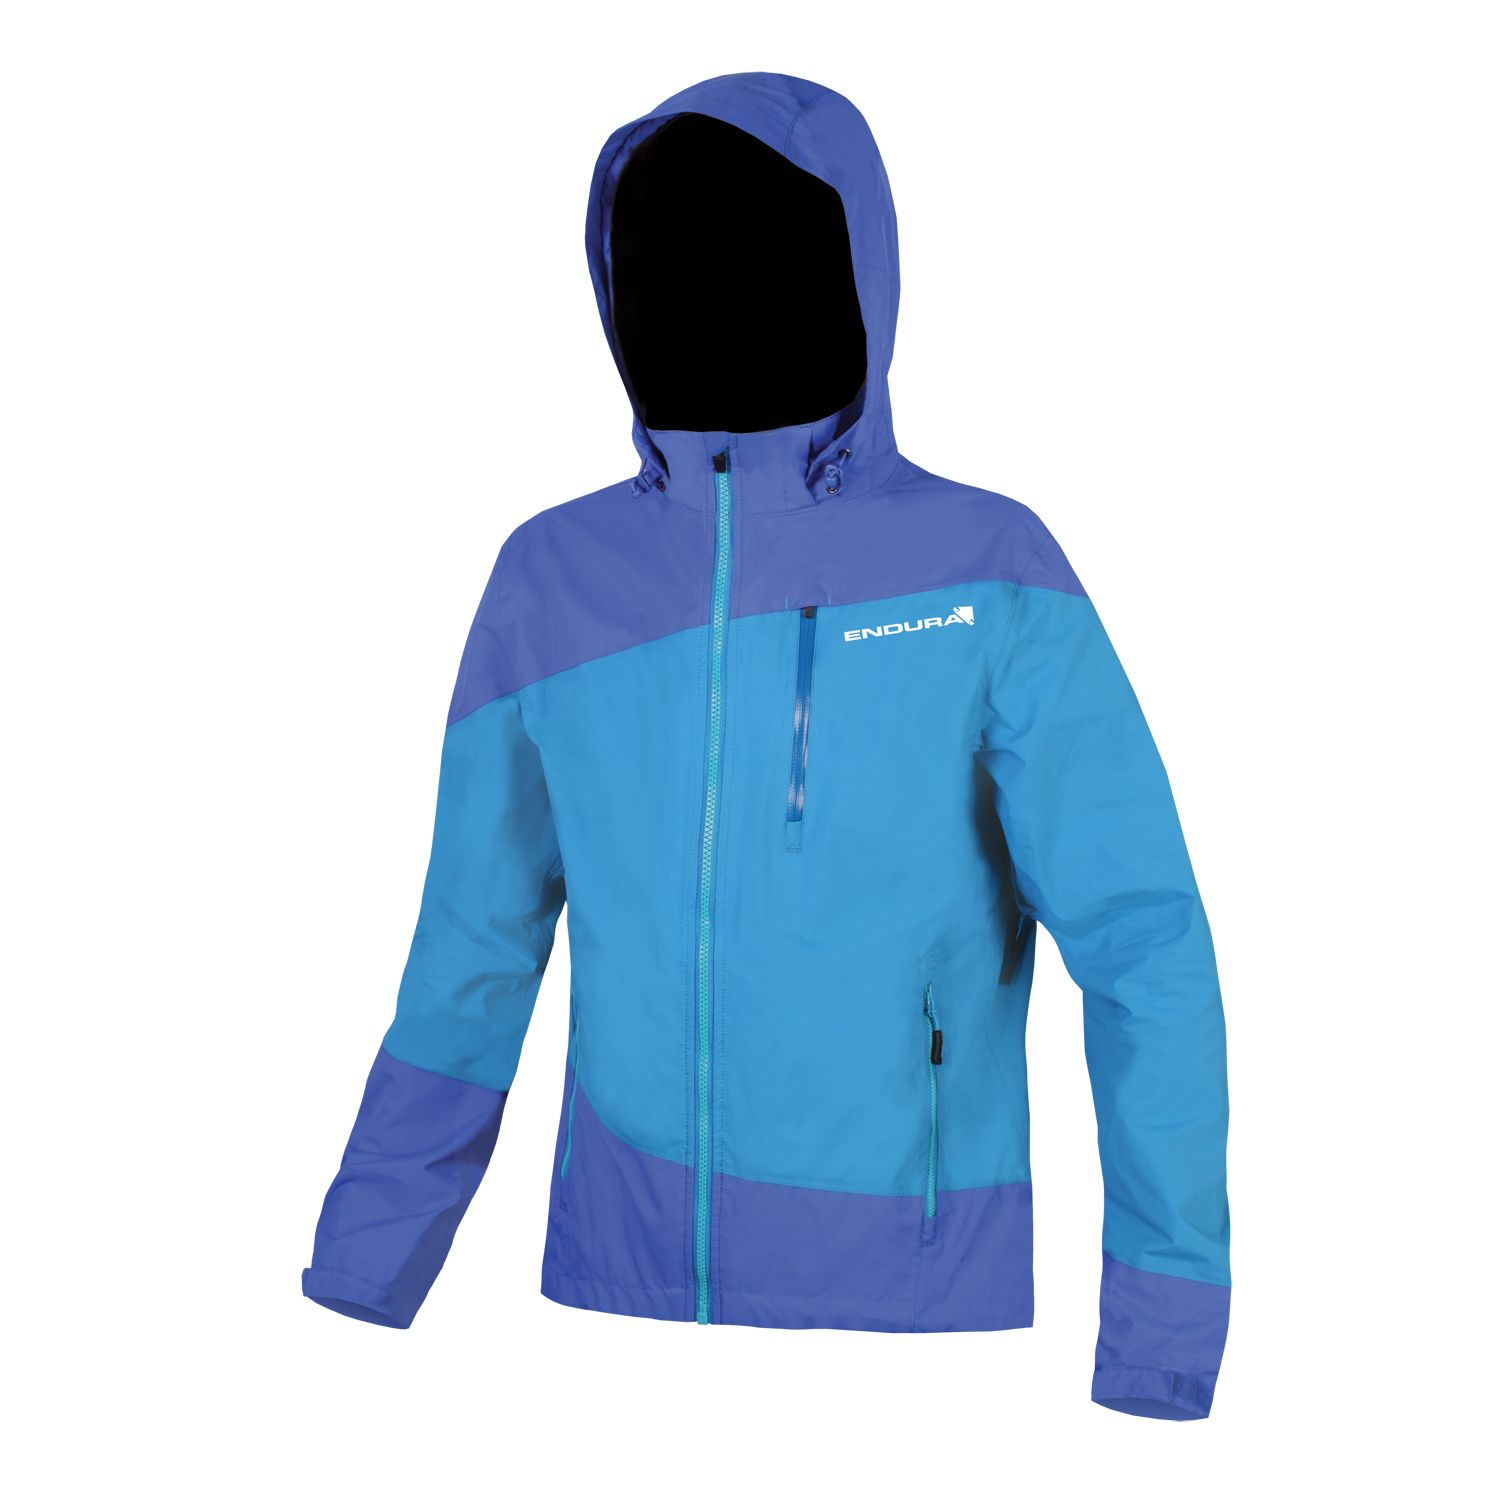 Endura Singletrack Waterproof Jacket